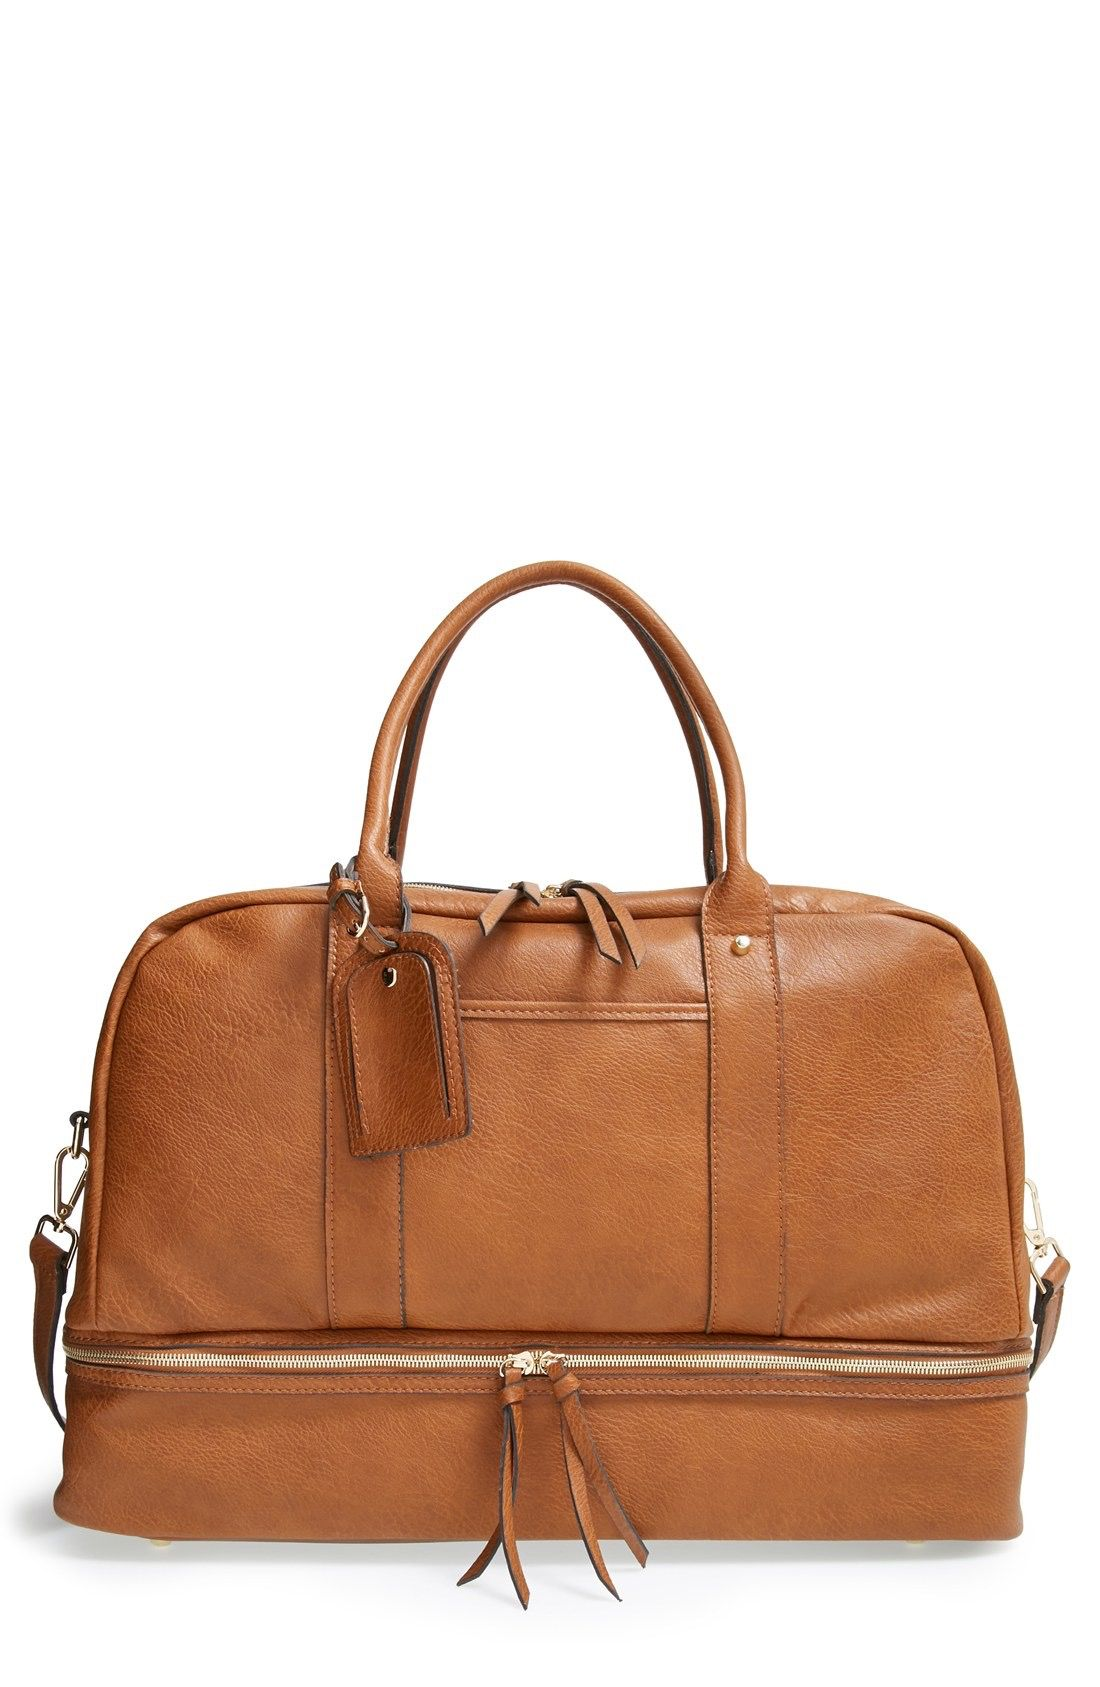 2e167eec795c Sole Society  Mason  Faux Leather Weekend Bag available at  Nordstrom